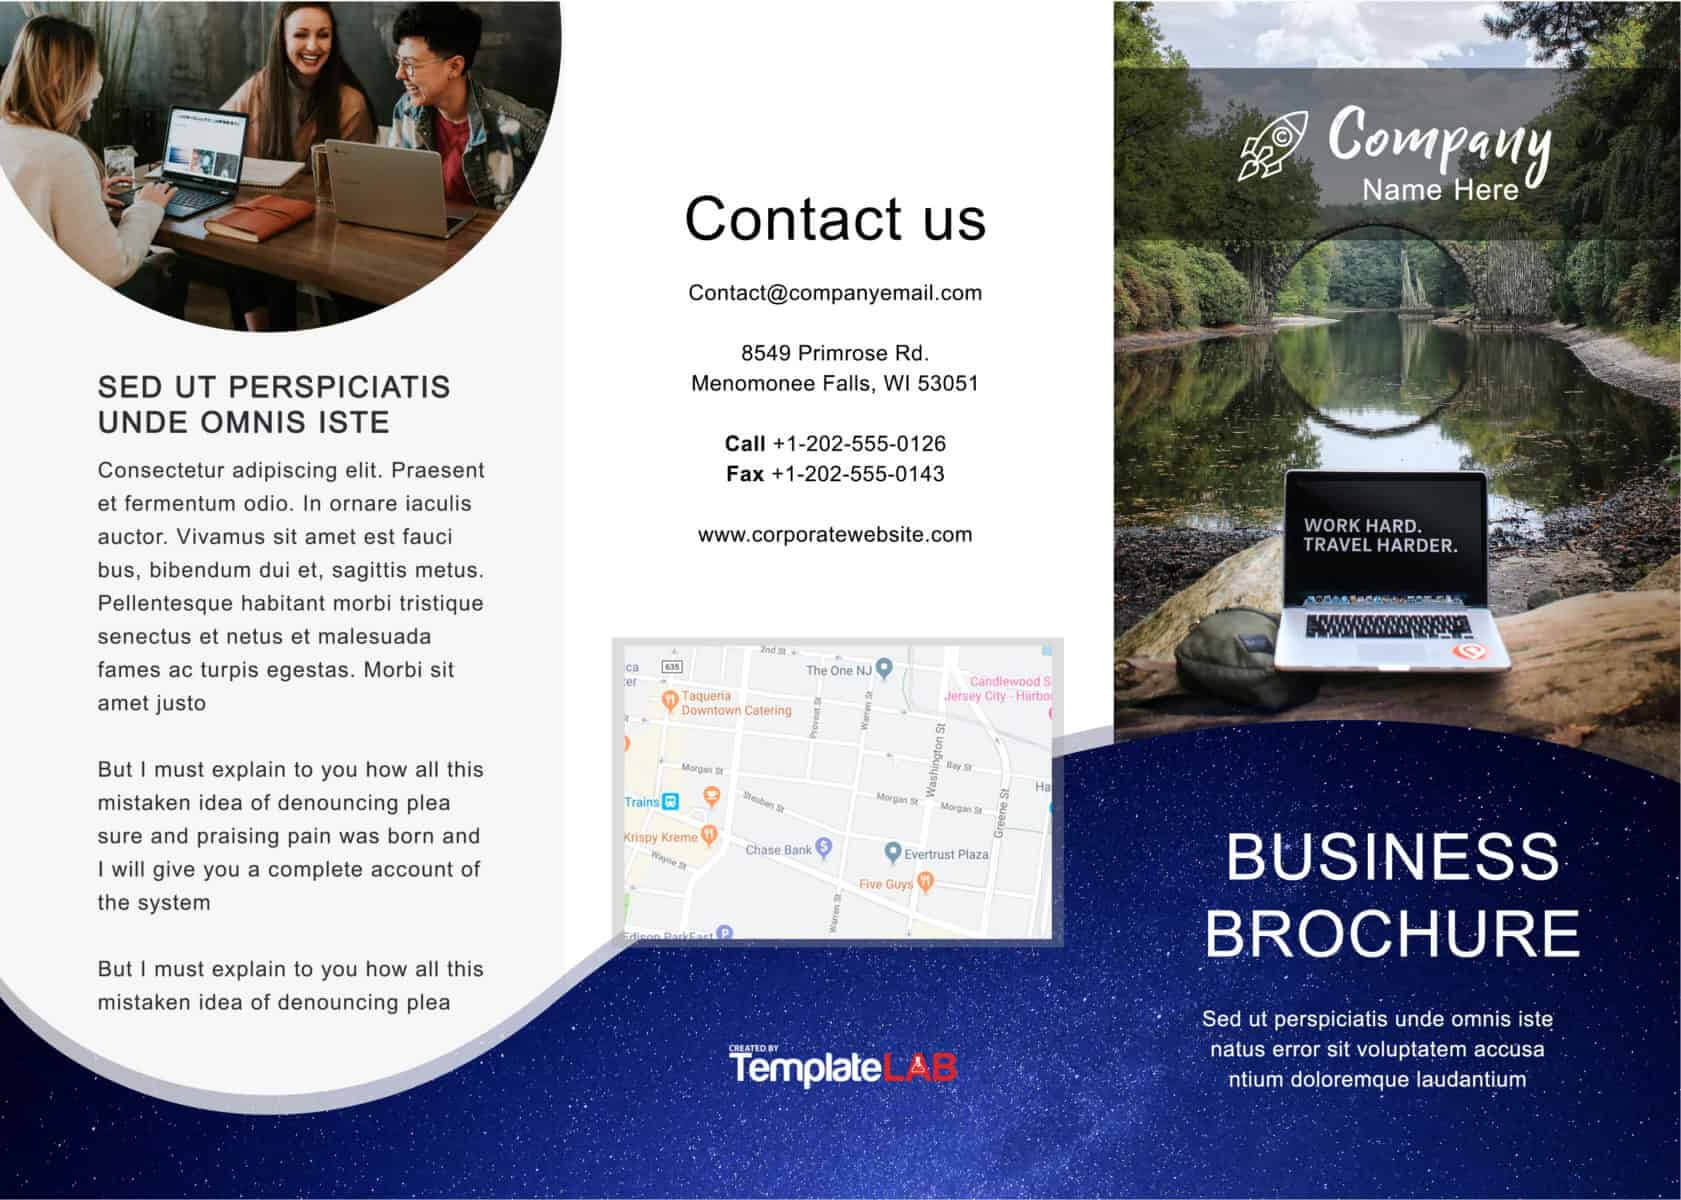 33 Free Brochure Templates (Word + Pdf) ᐅ Template Lab In Training Brochure Template